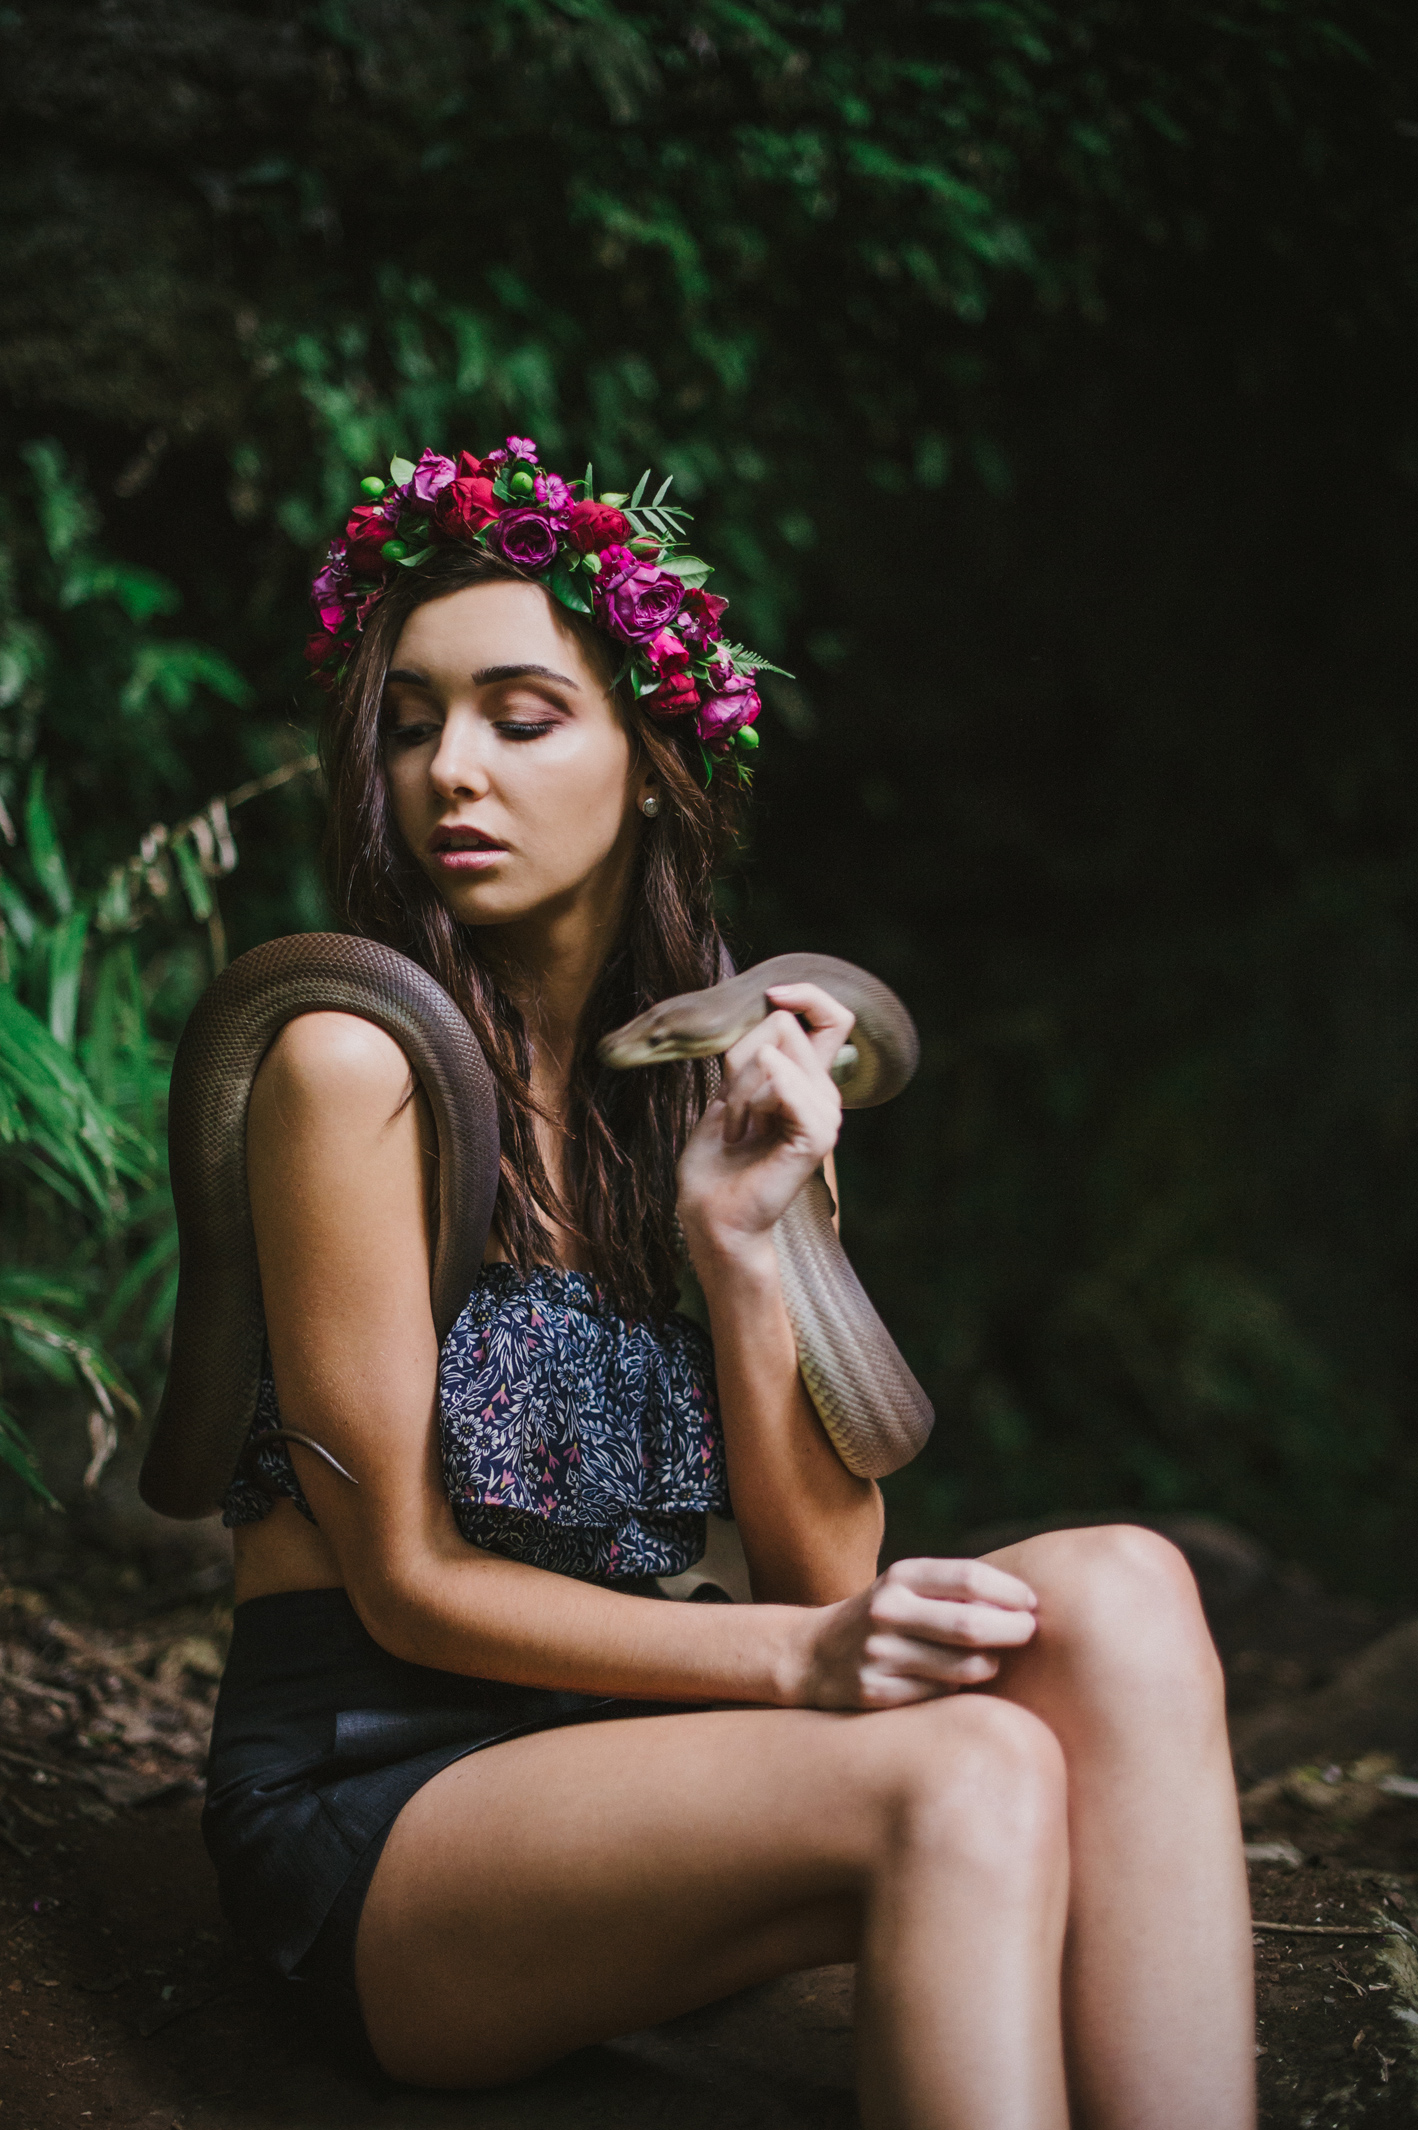 004-python-flowers_crown-of-eden_sophie-baker-photography